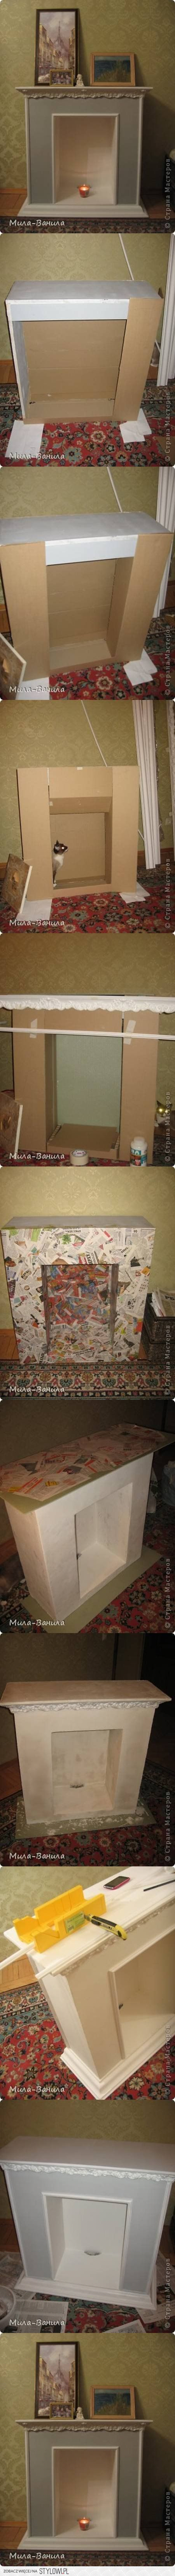 DIY Cardboard Decorated Fireplace DIY Projects | Useful… na Stylowi.pl